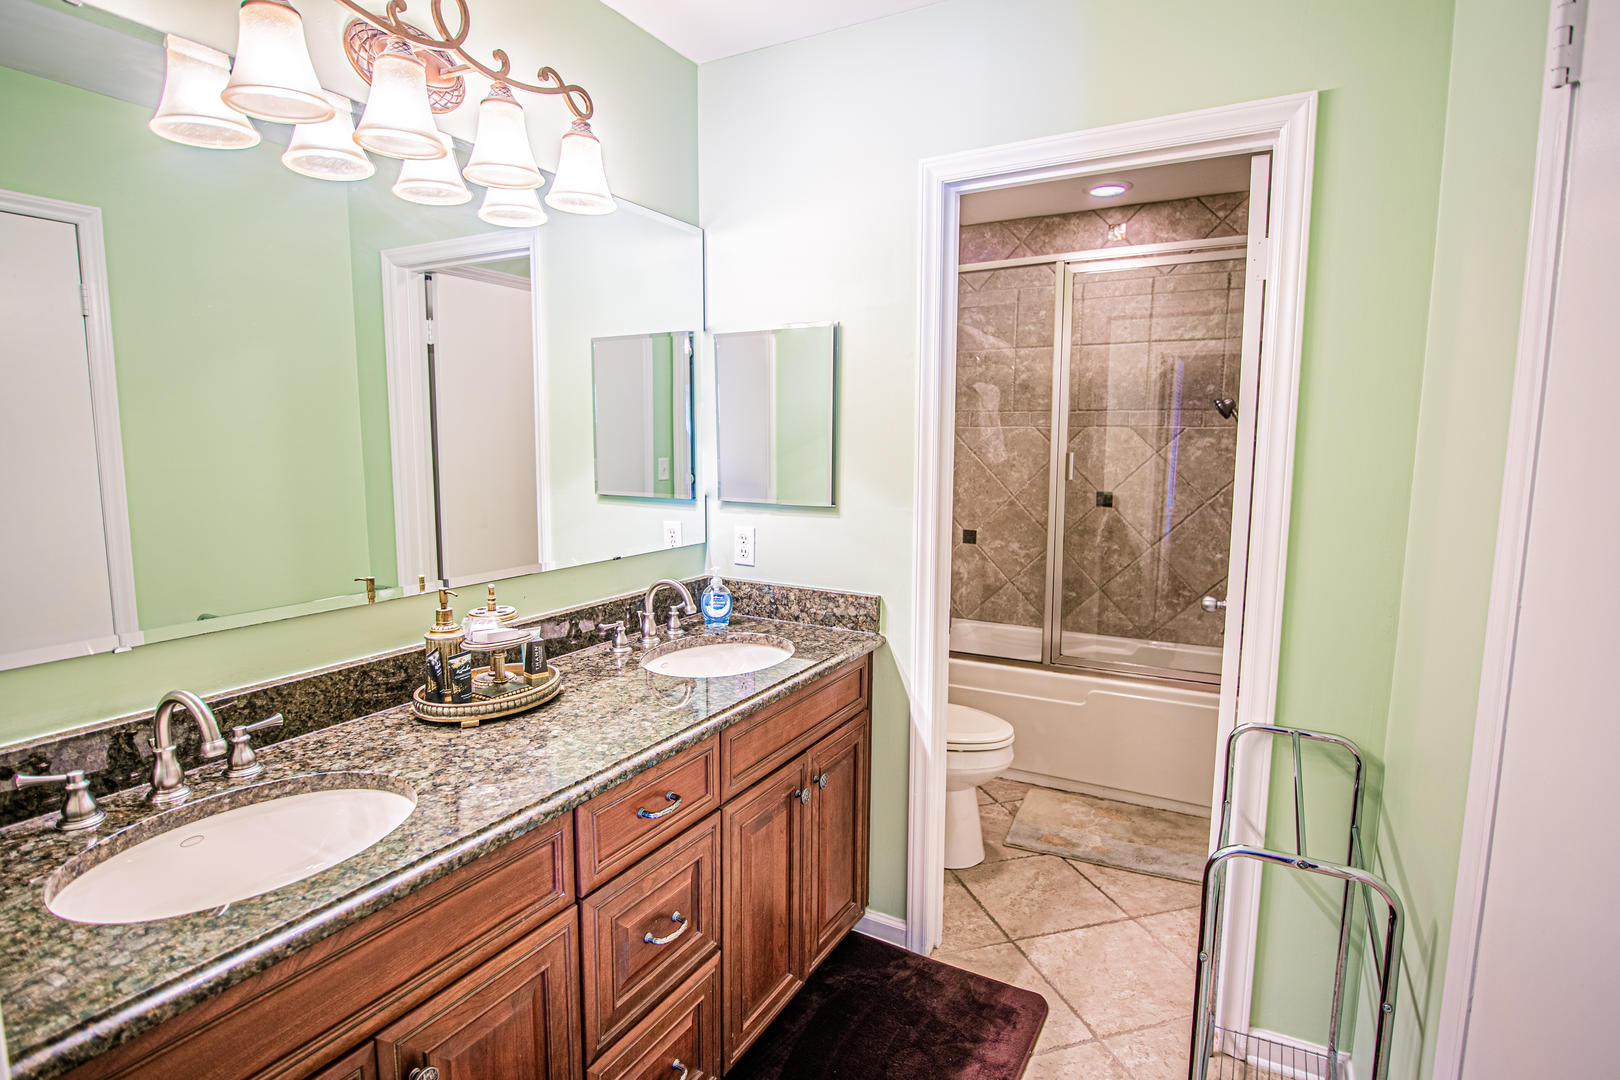 Ocean Creek Garden Home 41 - Master Bath